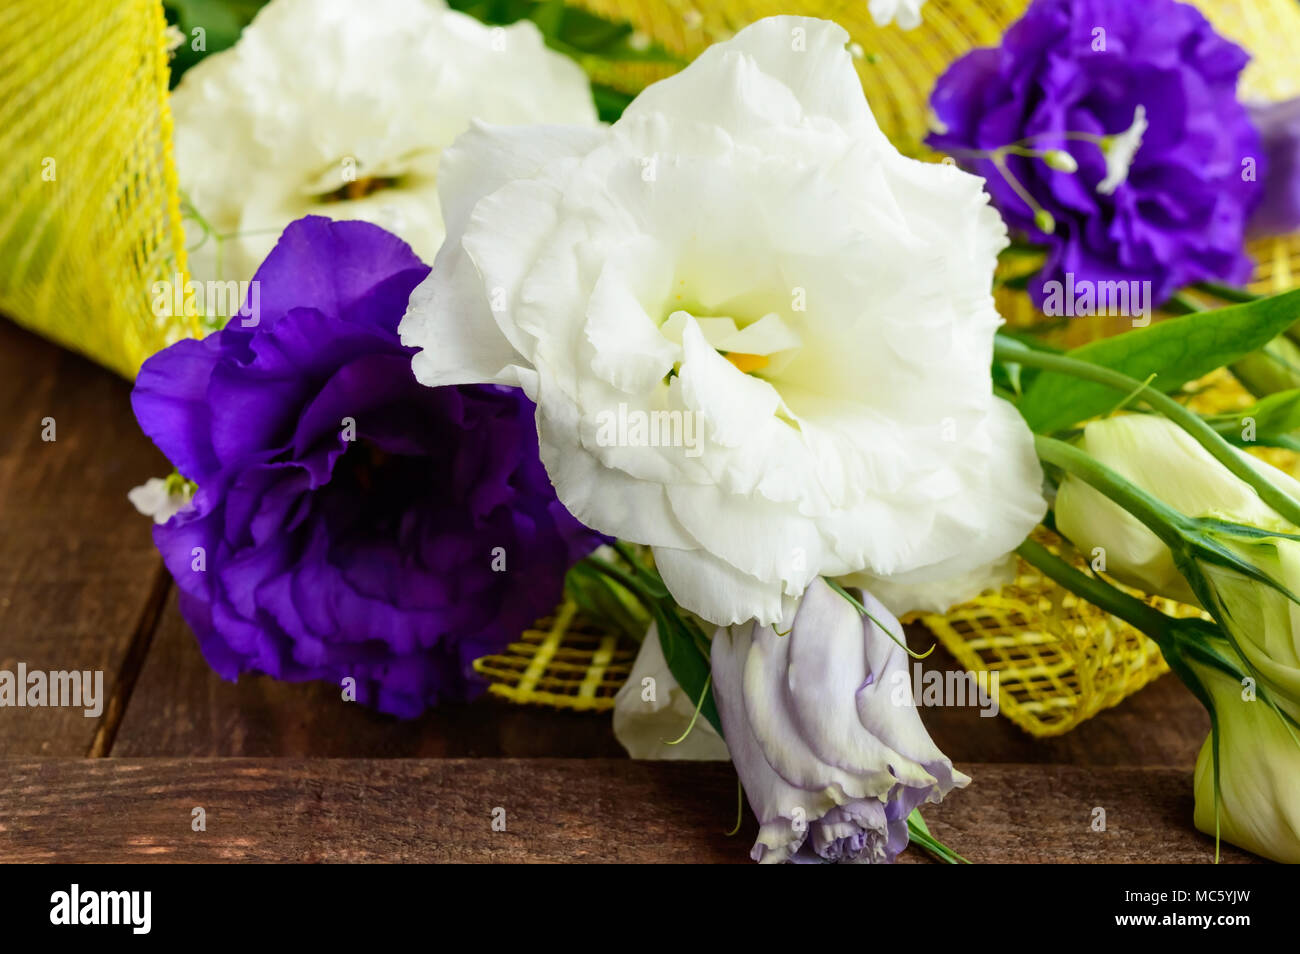 Freshly picked white and purple flowers eustomy (lisianthus) in the form of a bouquet on the wooden background. Close up Stock Photo